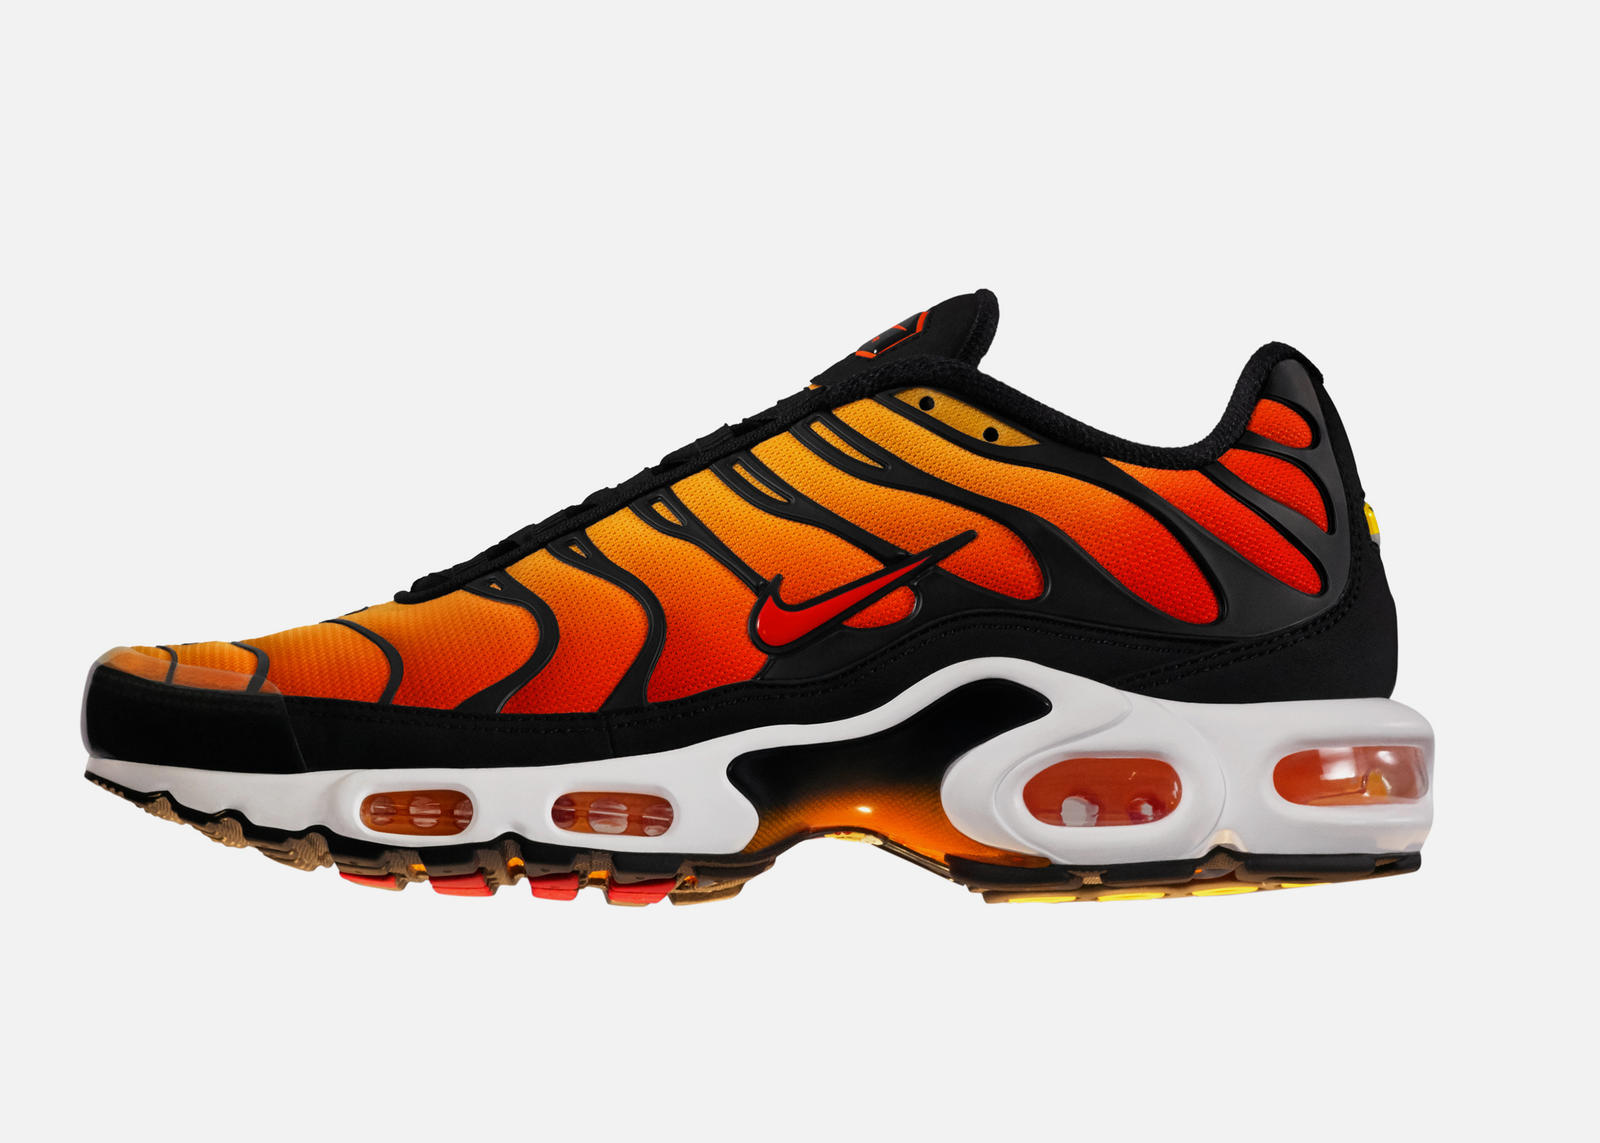 outlet store c92a3 c9513 The Untold Story of the Nike Air Max Plus 19